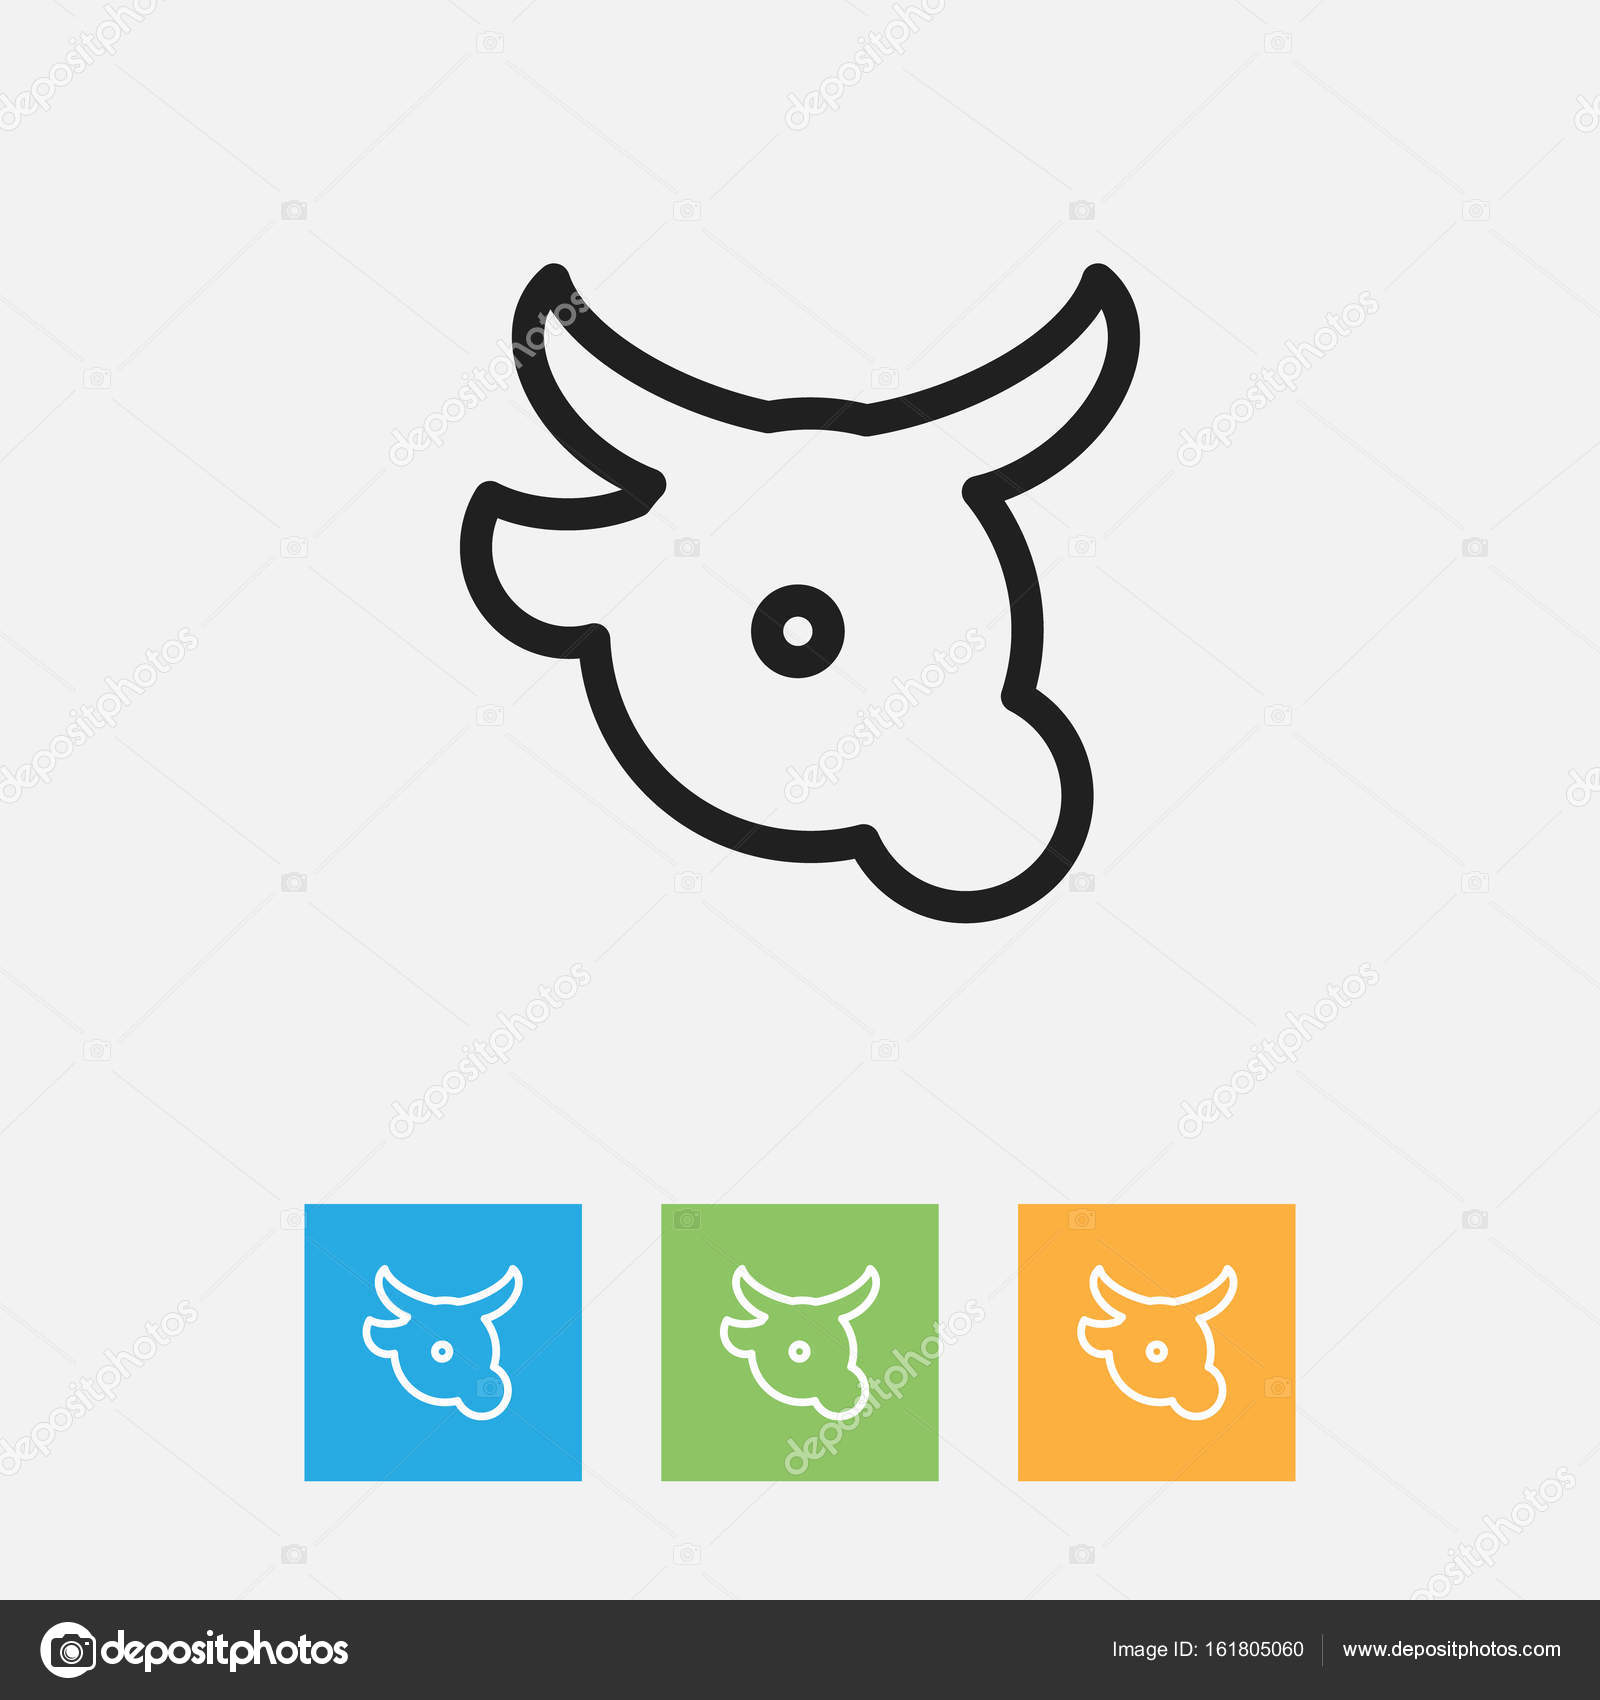 Vector Illustration Of Meal Symbol On Veal Outline Premium Quality